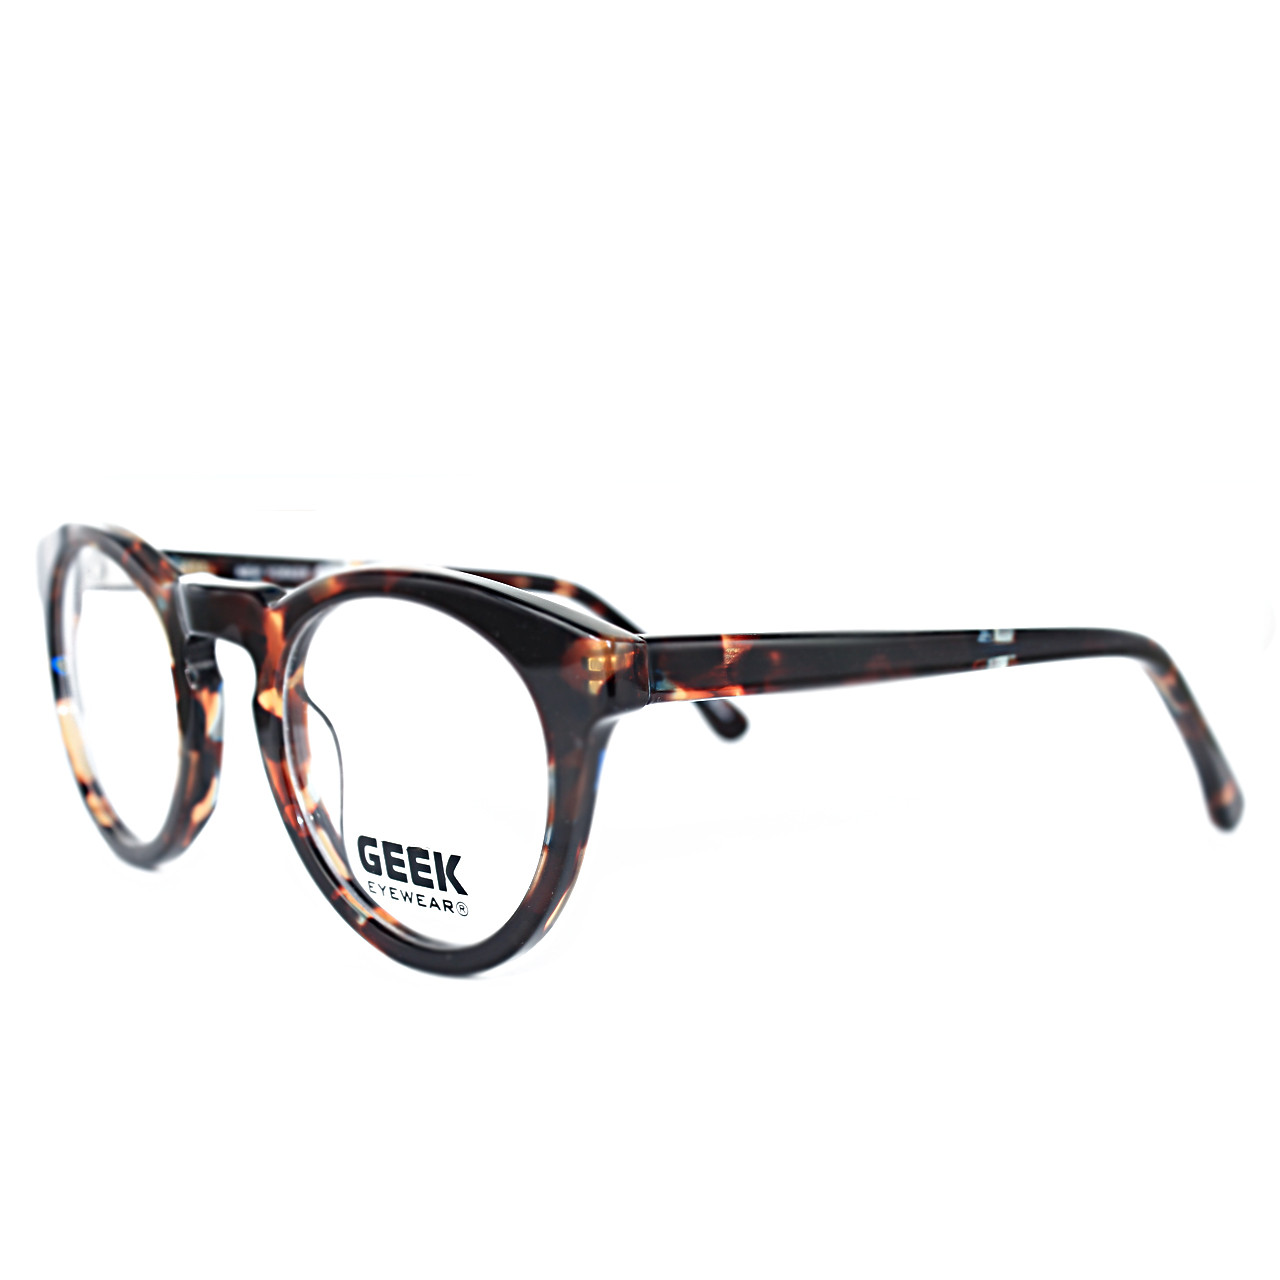 GEEK Eyewear GEEK New Yorker Brown